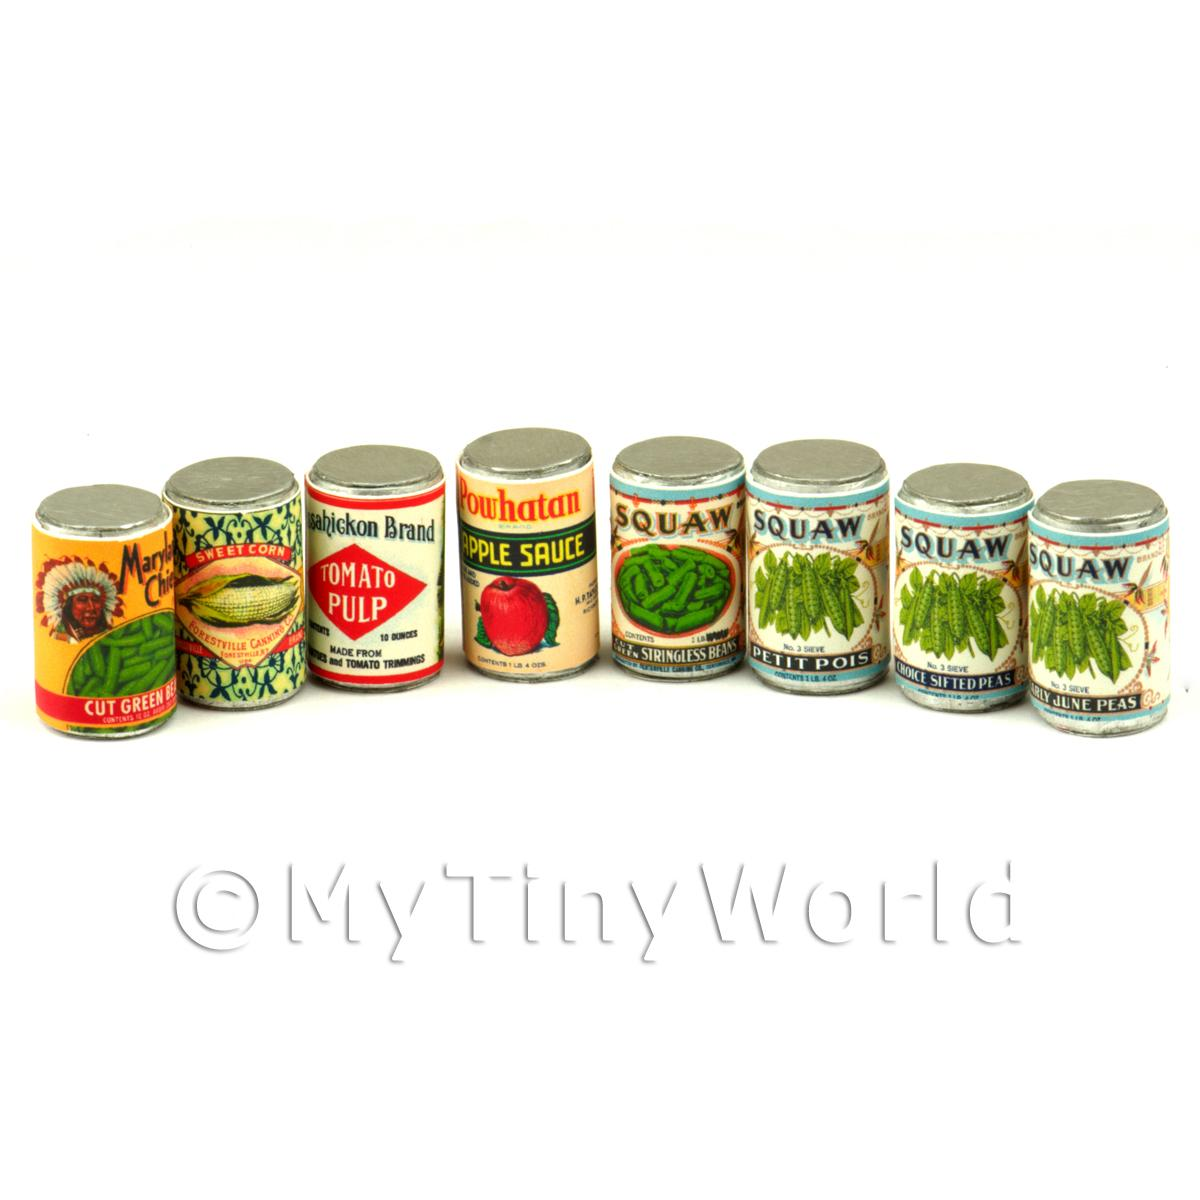 Set Of 8 Dolls House Miniature Native American Theme Cans (1890-1900)